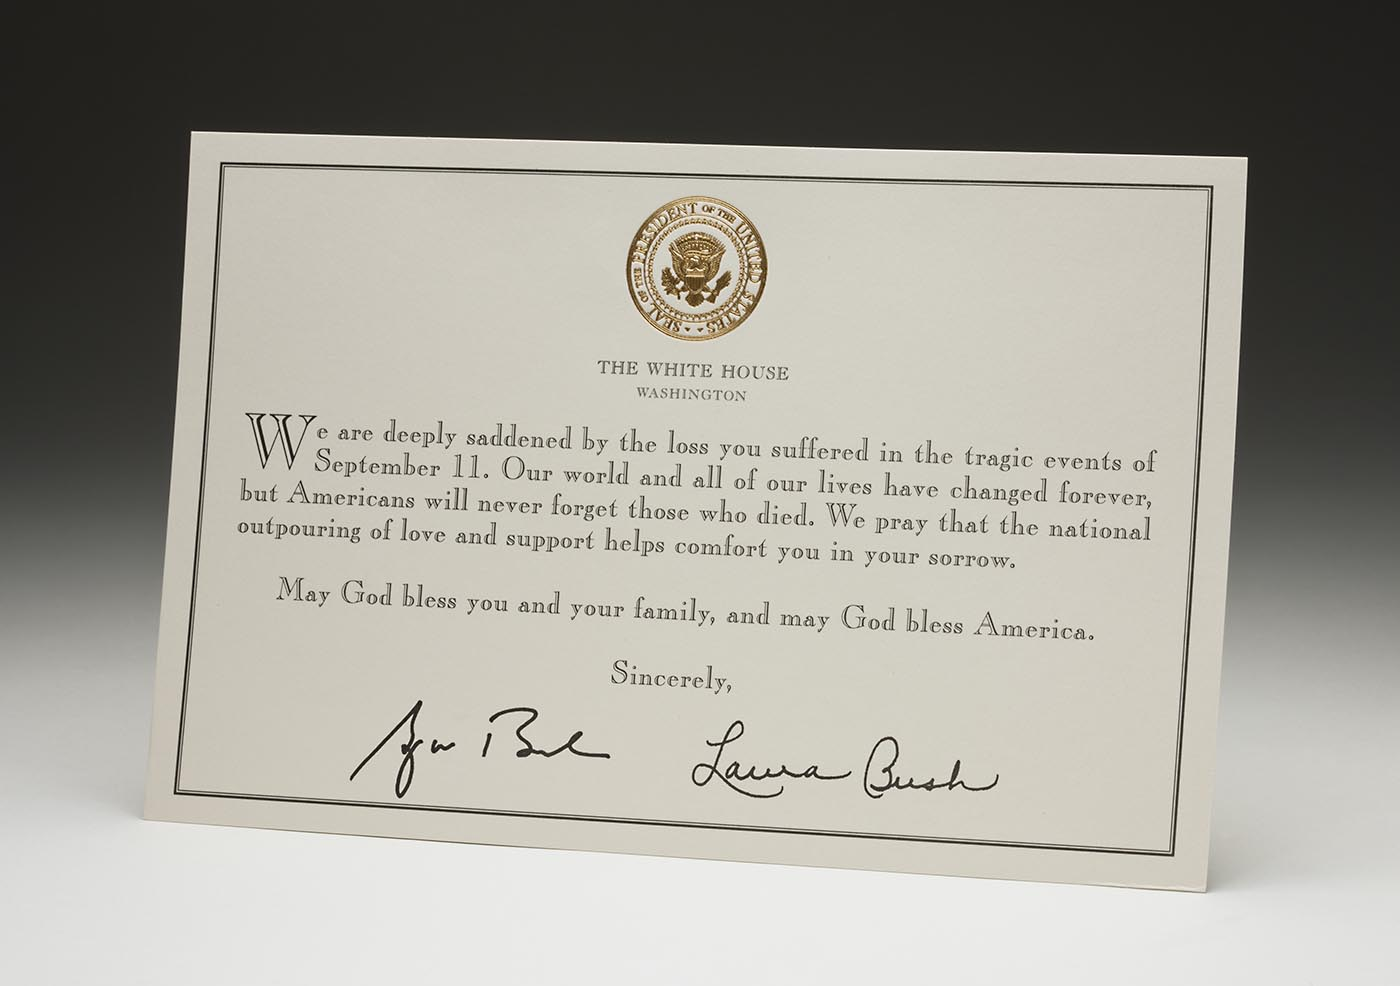 A beige-coloured card with a gold seal at centre top, with printed text 'THE WHITE HOUSE / WASHINGTON'. At the centre is the printed text: 'We are deeply saddened by the loss you suffered in the tragic events of September 11. Our world and all of our lives have changed forever, but Americans will never forget those who died. We pray that the national outpouring of love and support helps comfort you in your sorrow. May God bless you and your family, and may God bless America. Sincerely,'. The card has two handwritten signatures centre bottom, 'George Bush' left and 'Laura Bush' right.